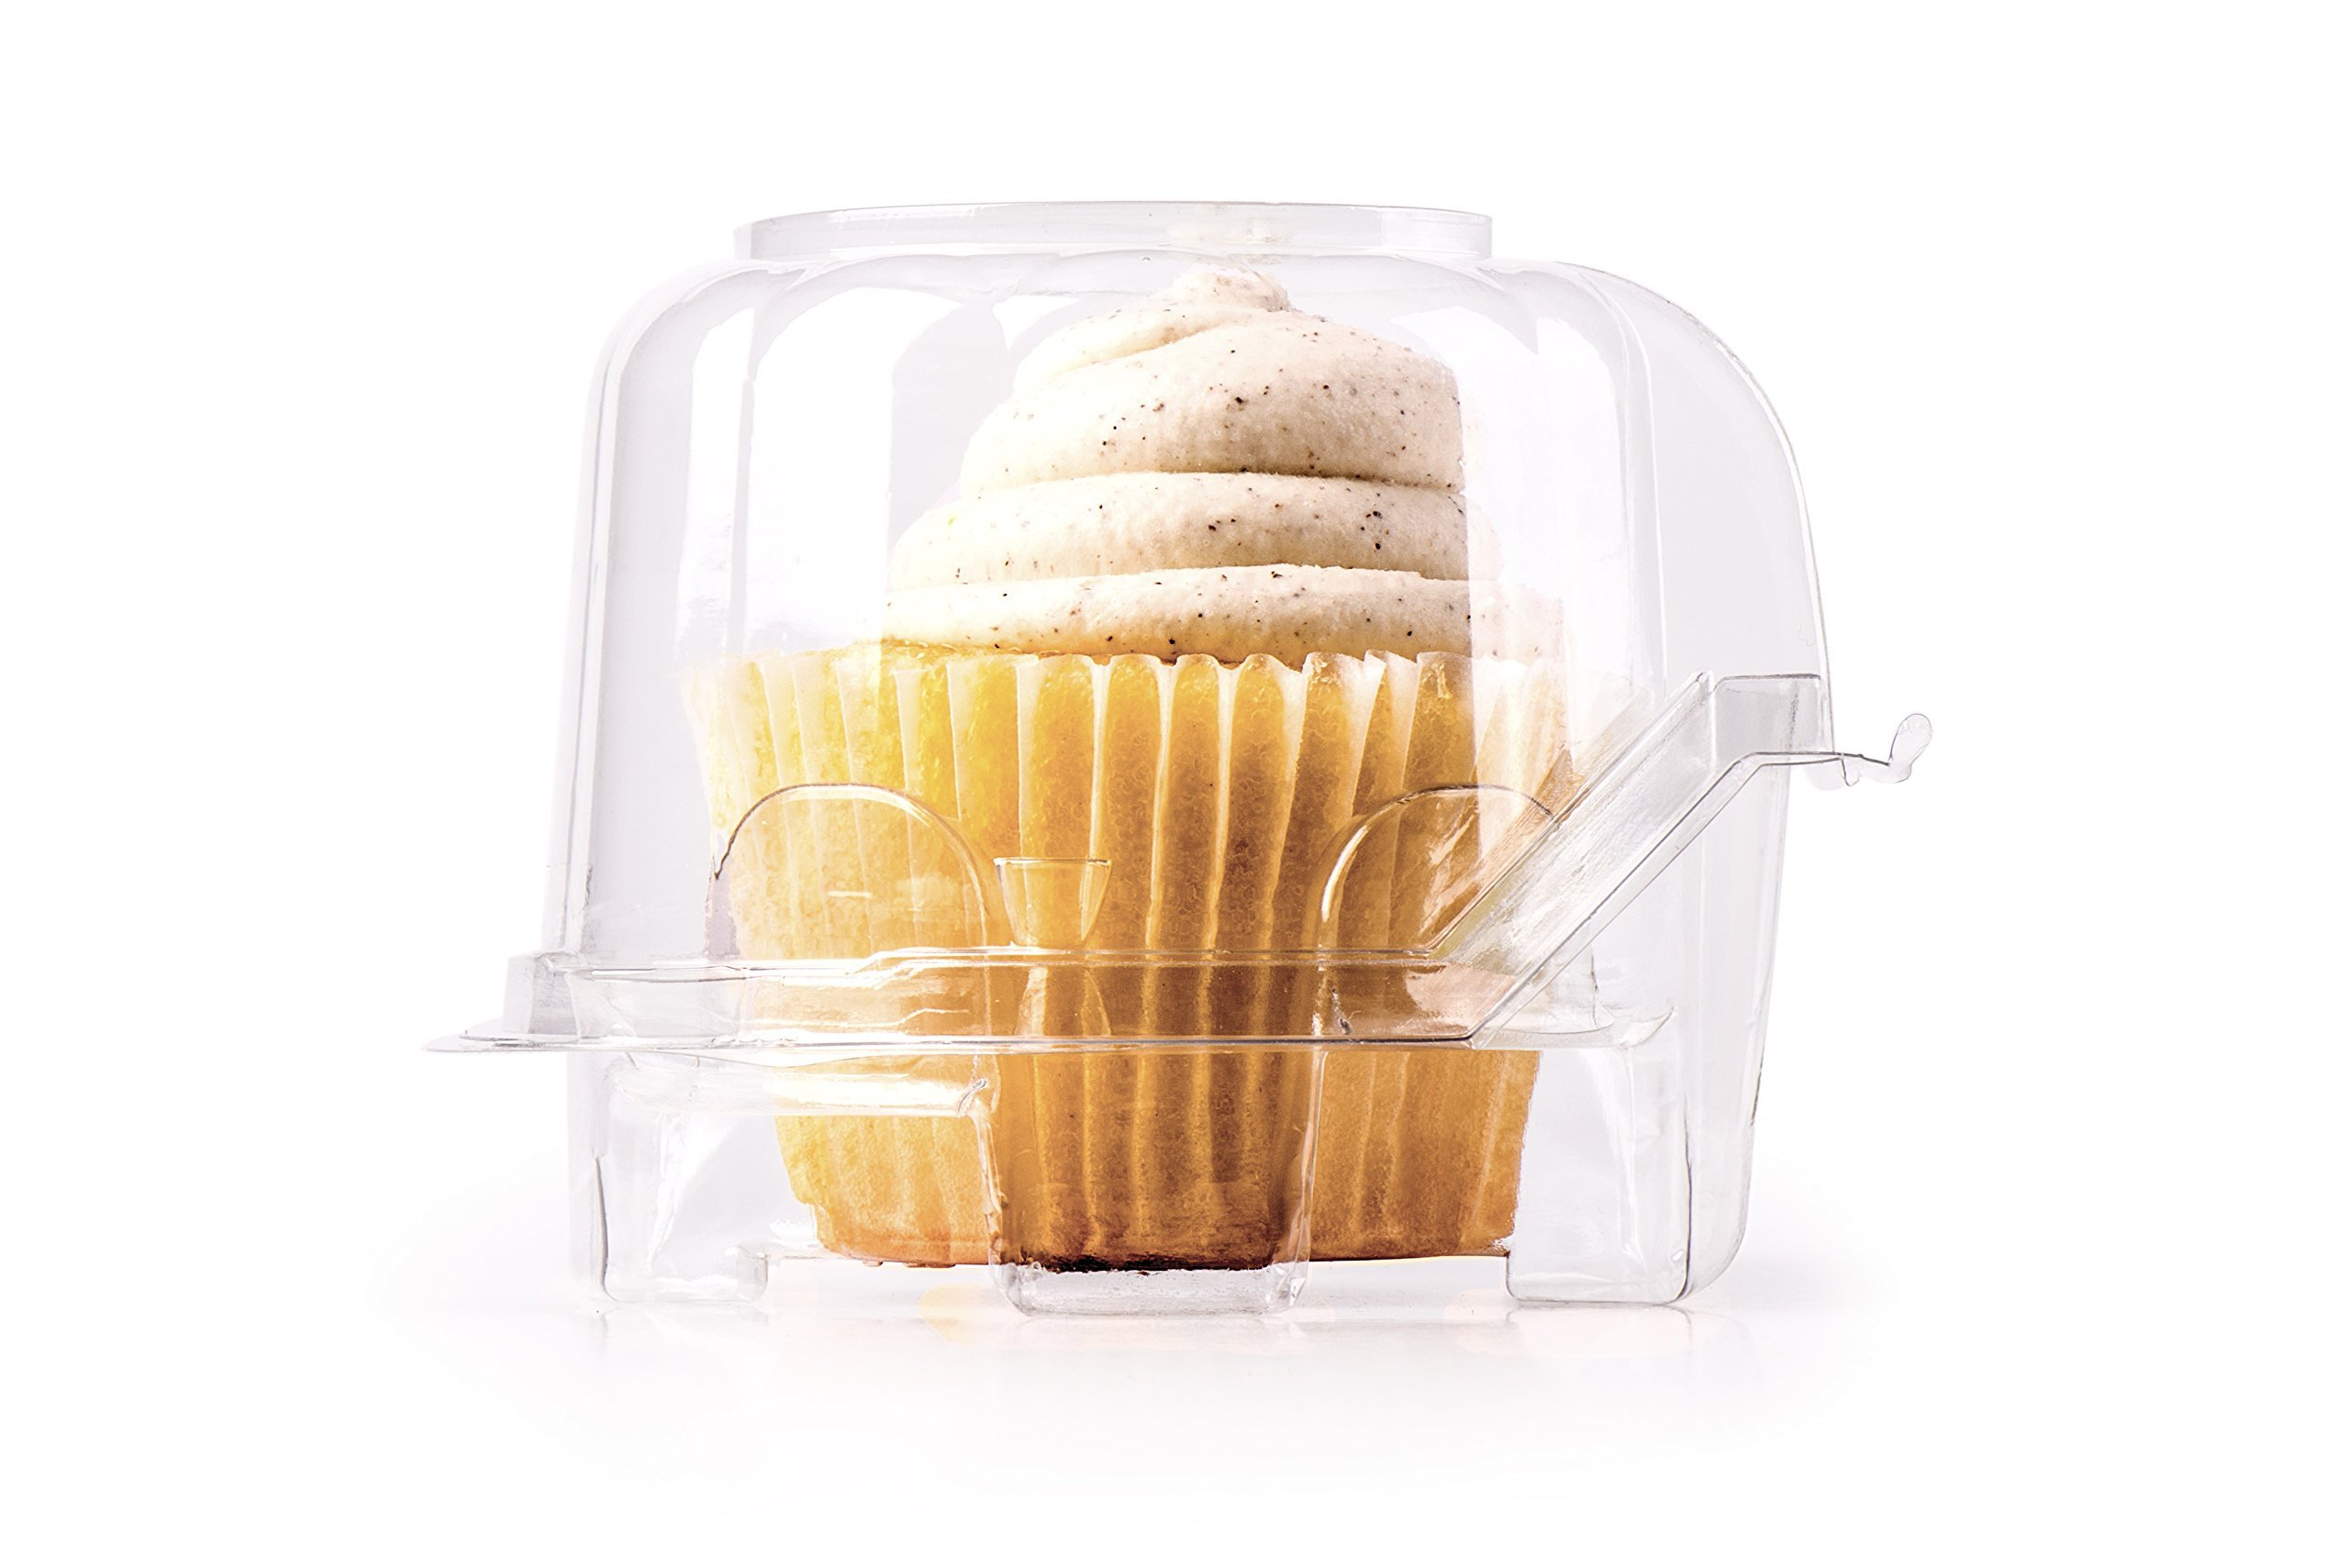 Individual Plastic Cupcake Boxes | Set of 48 Clear Plastic Dome Single Compartment Cupcake Holders With Improved Closing Mechanism …